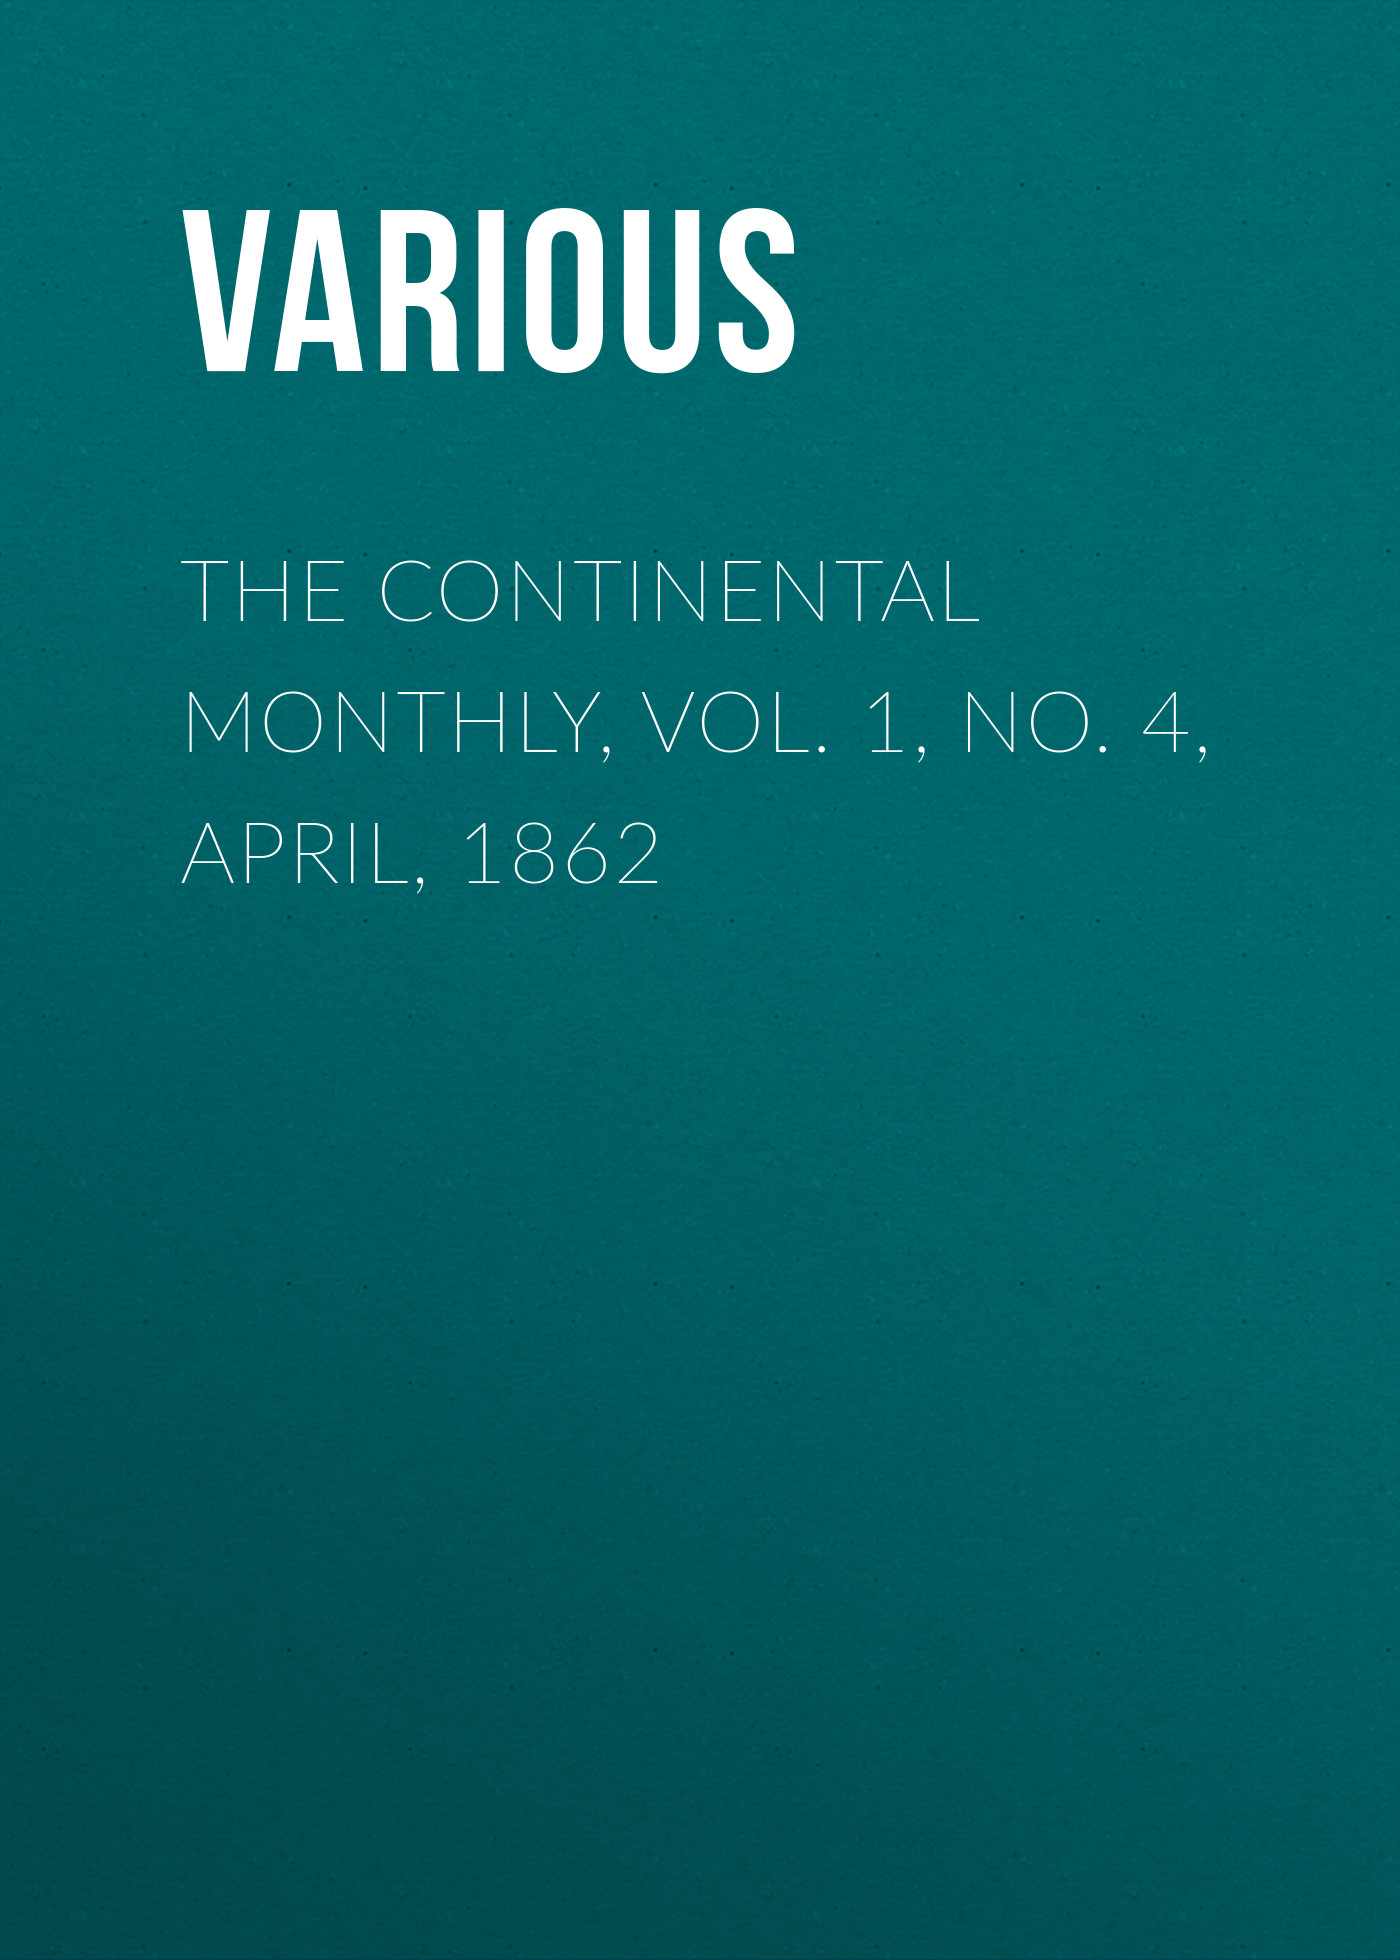 цена Various The Continental Monthly, Vol. 1, No. 4, April, 1862 онлайн в 2017 году